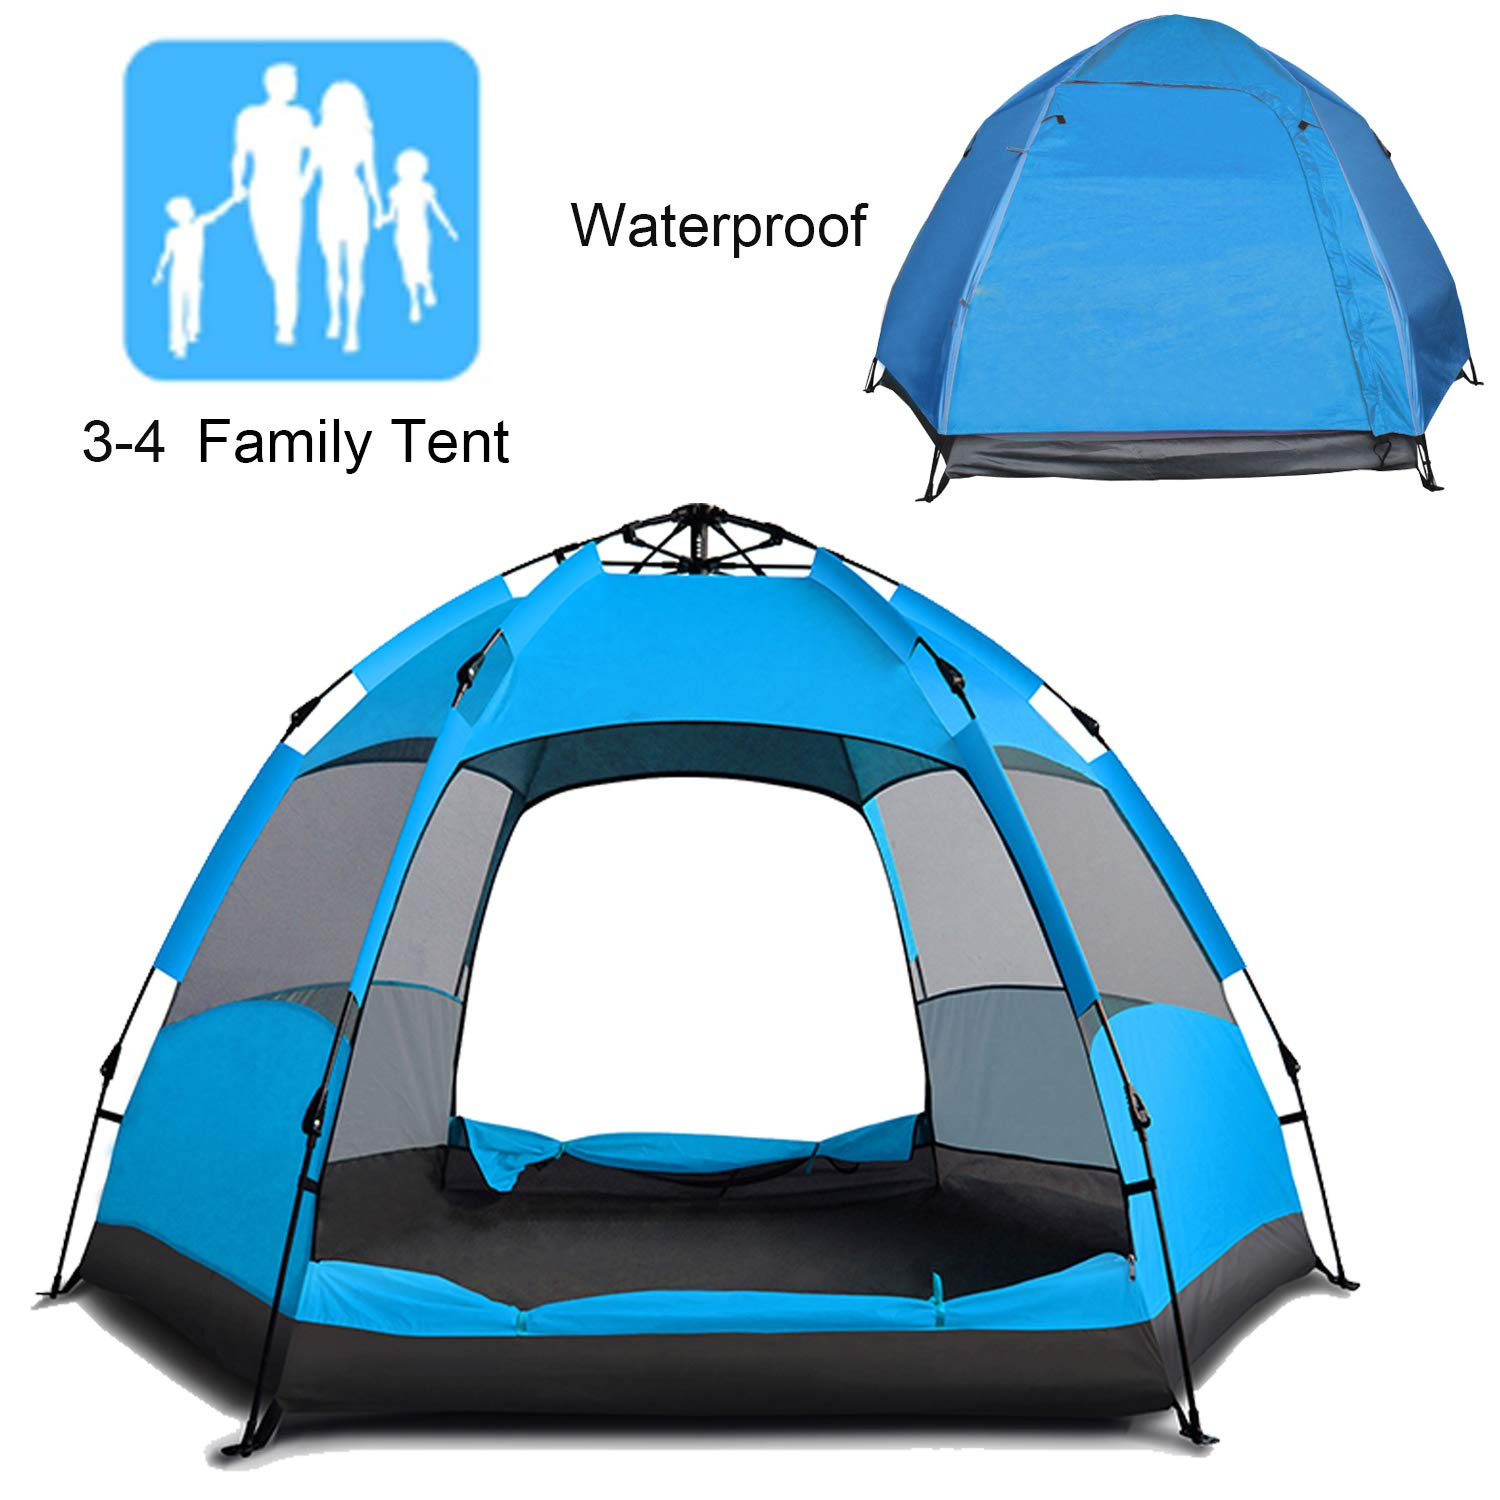 Campingtens Automatic Waterproof Camping Tent for 3-4 Persons,Big Size Oxford Cloth Double Layer Family Camping Tent with Instant Setup.